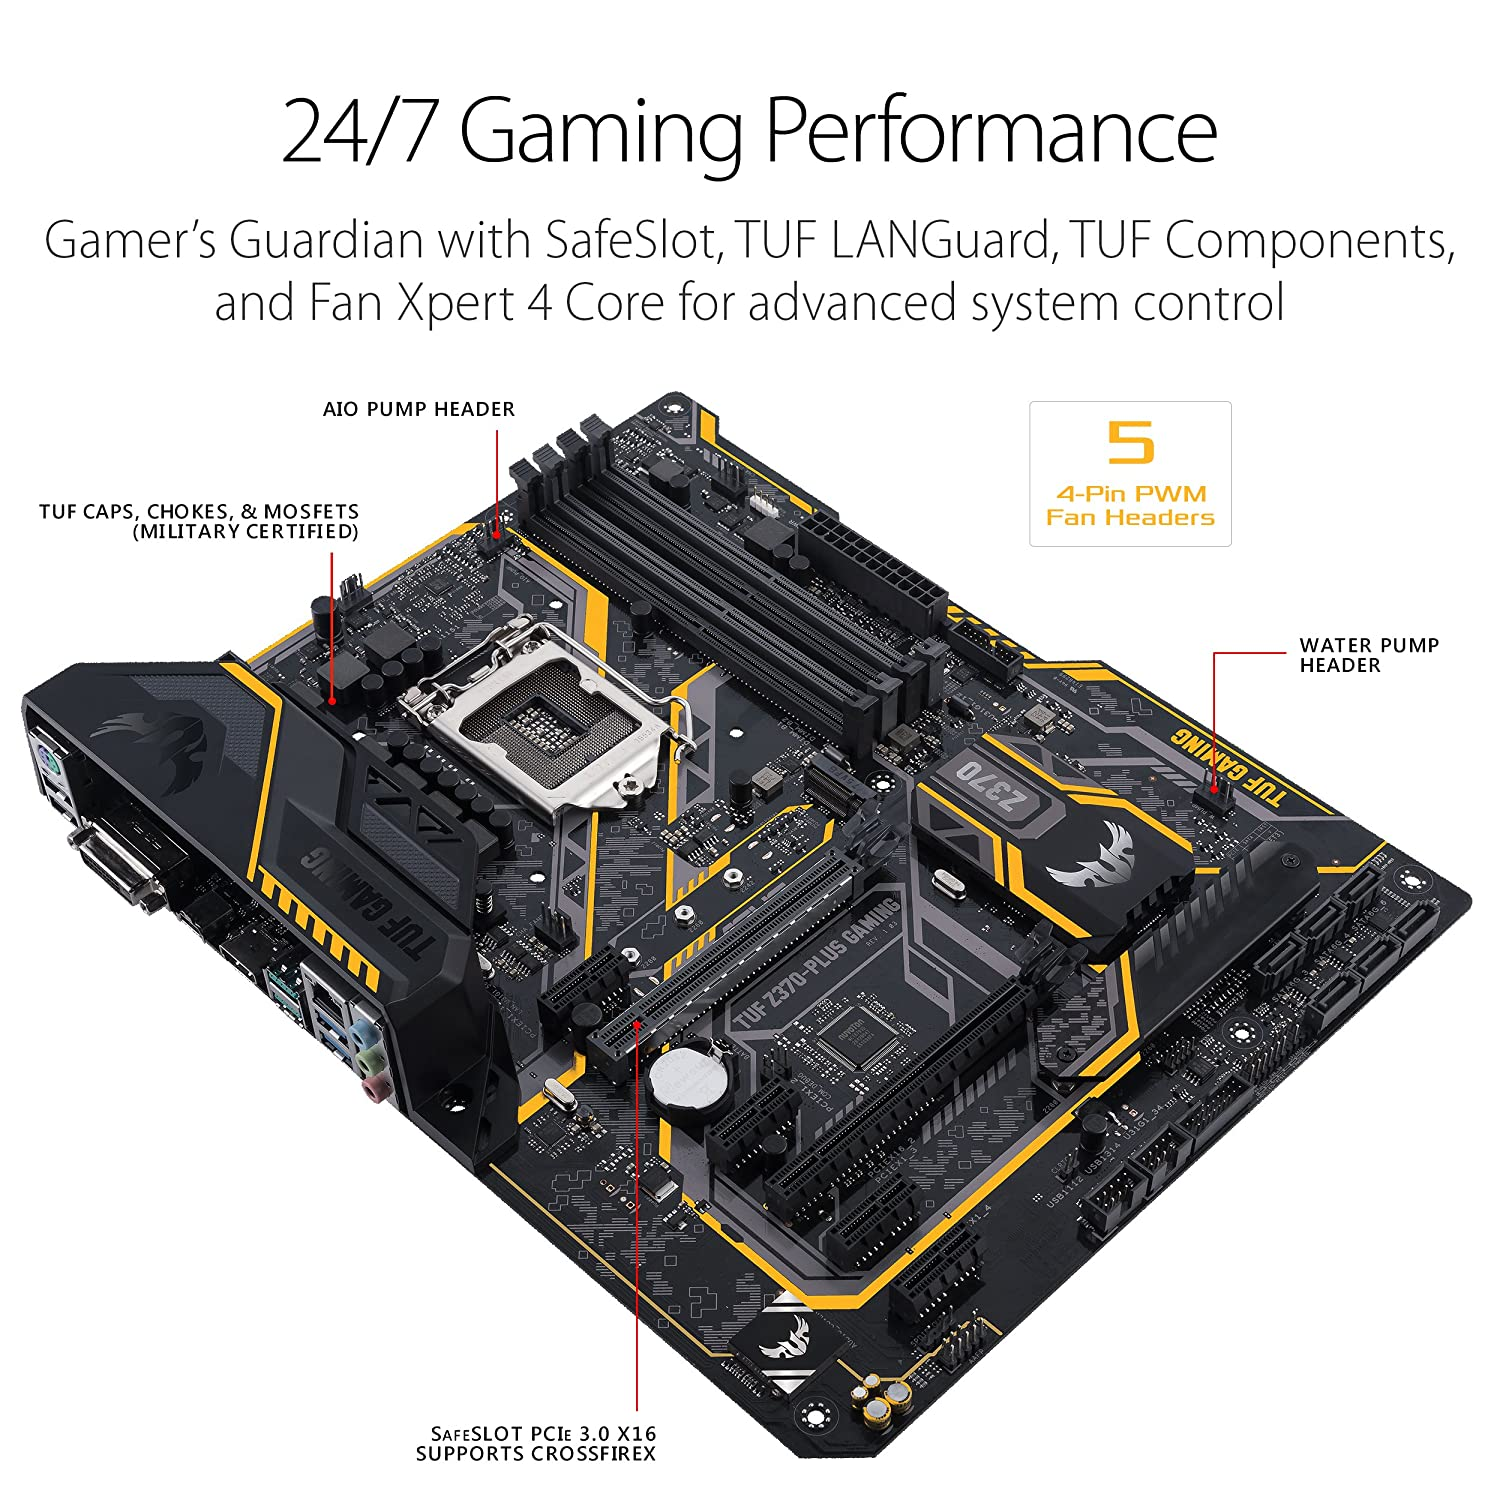 Buy Asus Tuf Z370 Plus Gaming 8th Generation Intel Lga Charger Wiring Diagram 1151 Atx Motherboard Online At Low Prices In India Reviews Ratings